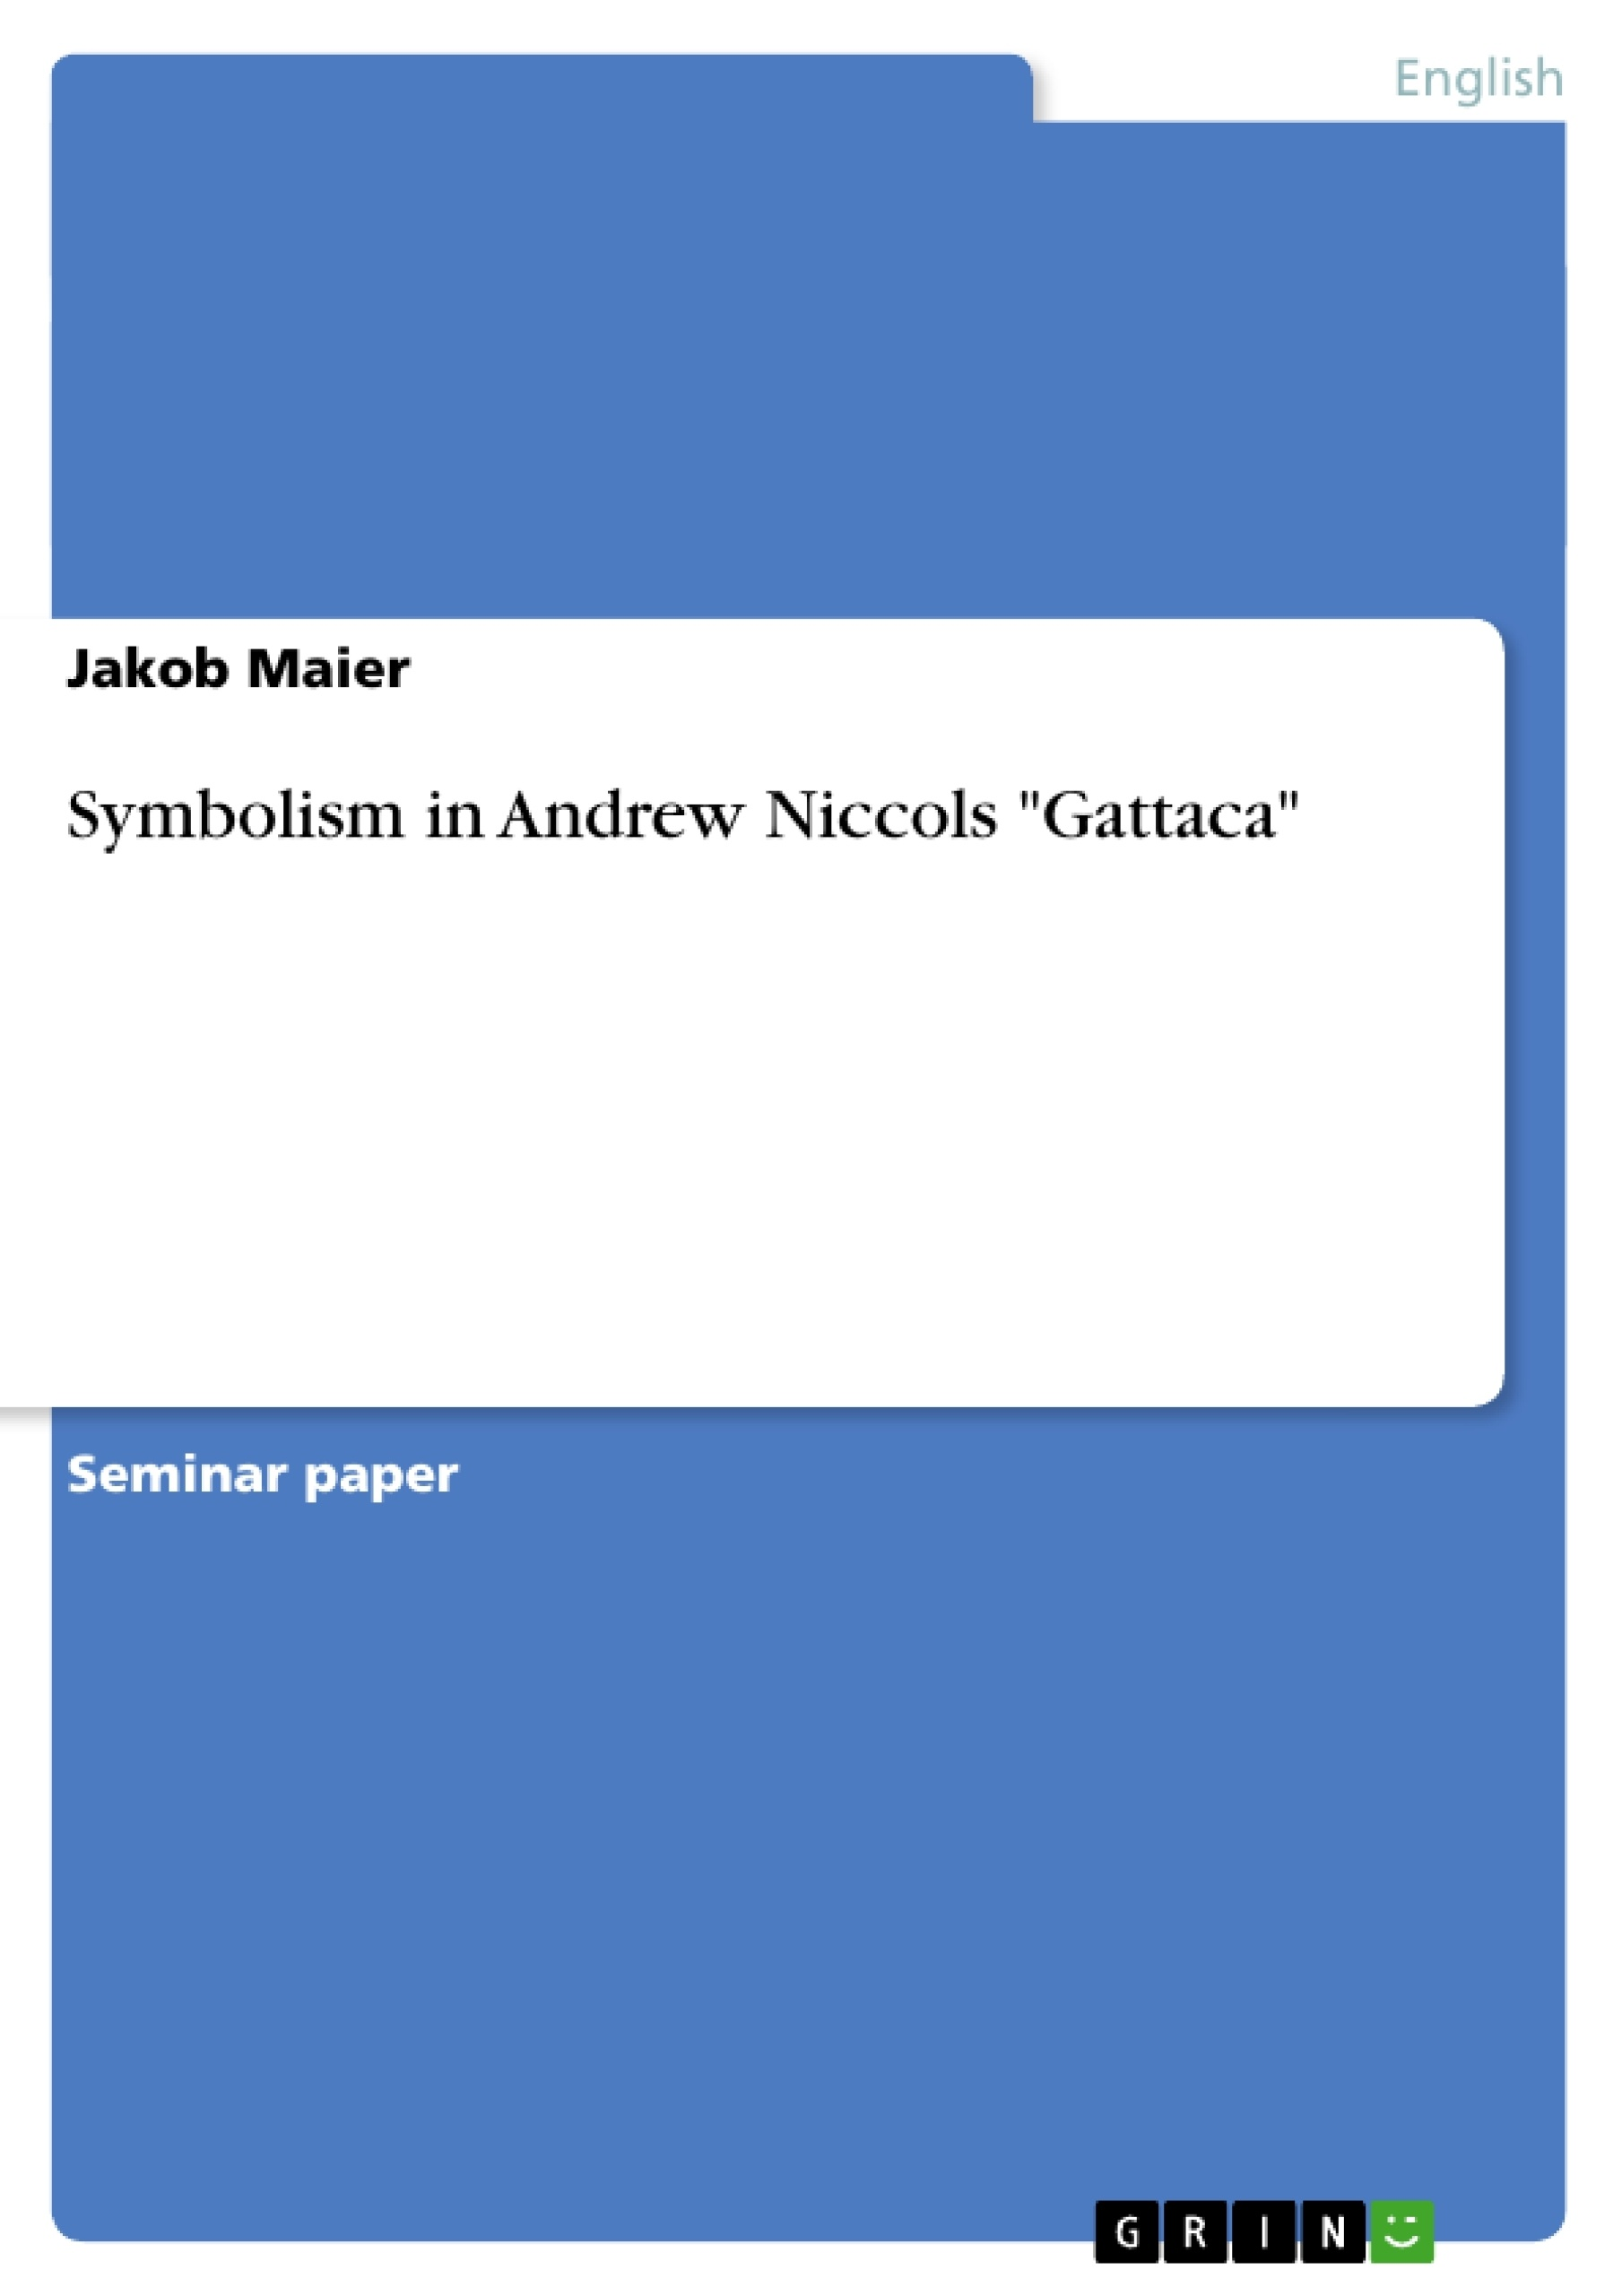 symbolism in andrew niccols gattaca publish your master s symbolism in andrew niccols gattaca publish your master s thesis bachelor s thesis essay or term paper